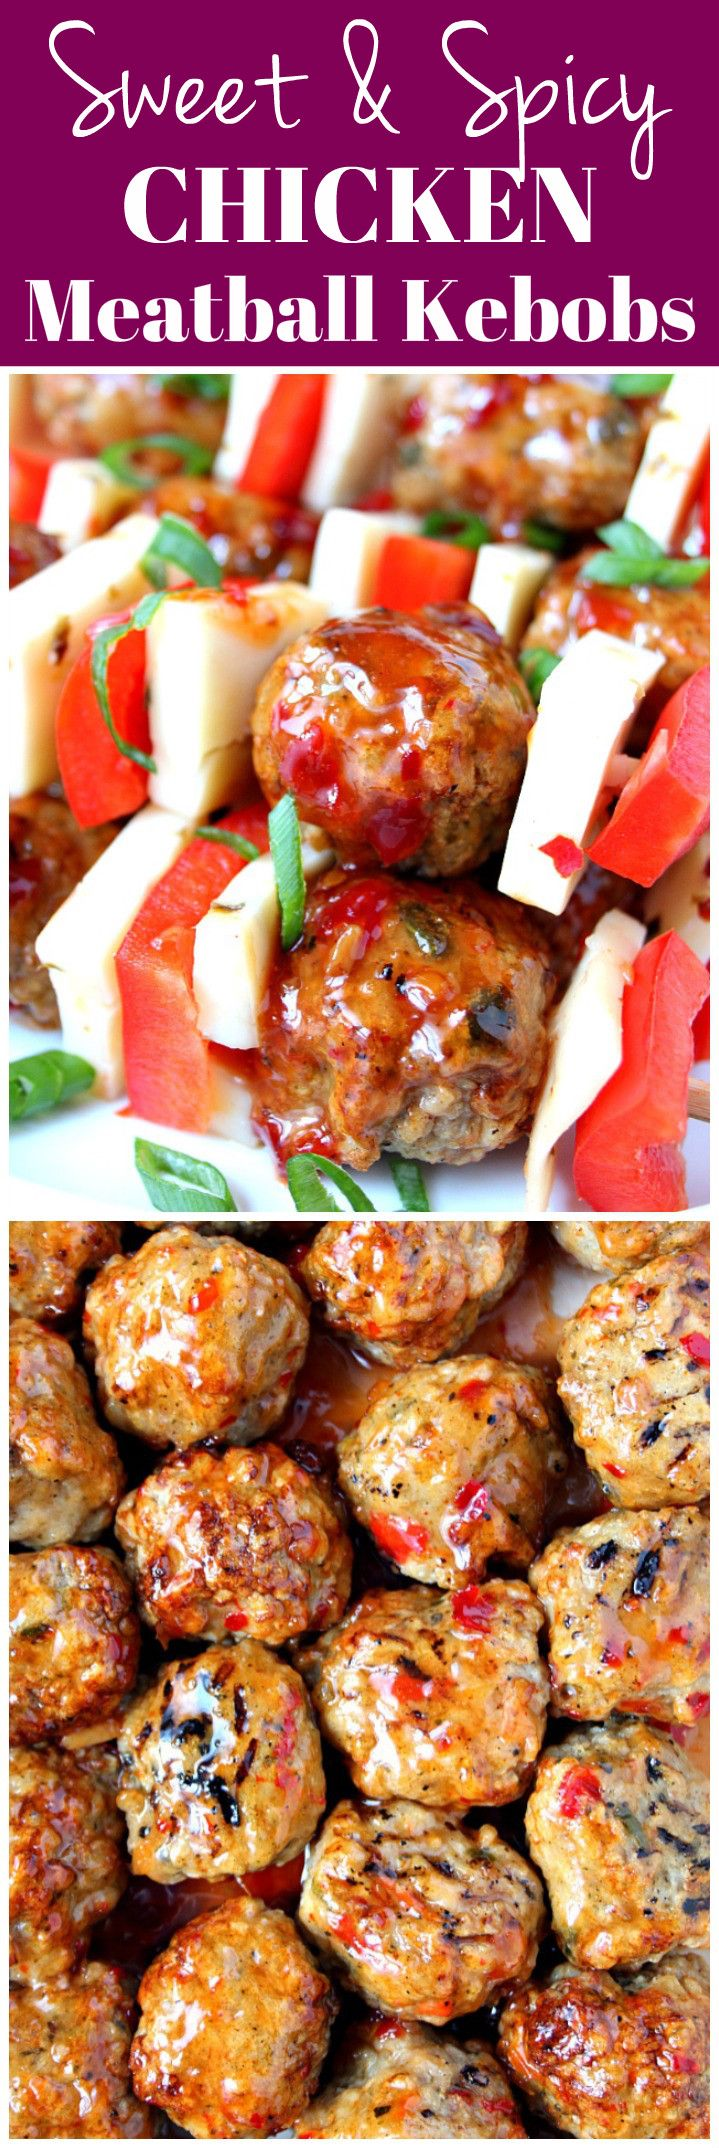 Sweet and Spicy Chicken Meatball Kebobs Recipes - fun way to serve spicy chicken meatballs glazed with sweet chili sauce. Bright and colorful appetizer for your next party!